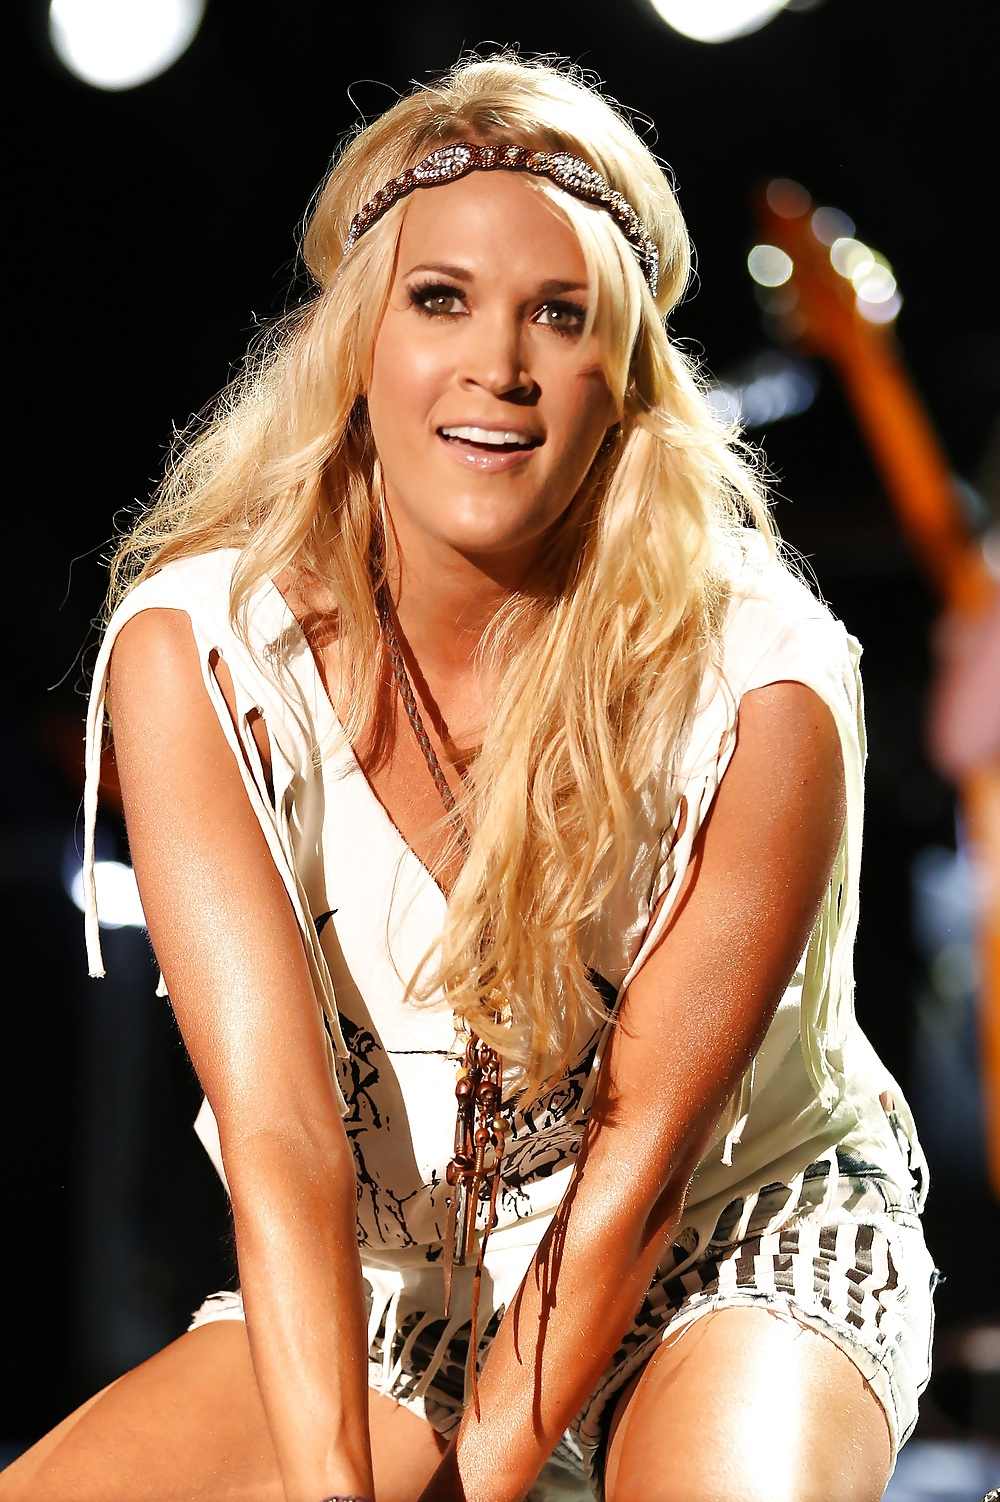 Black free pictures of carrie underwood butt and white